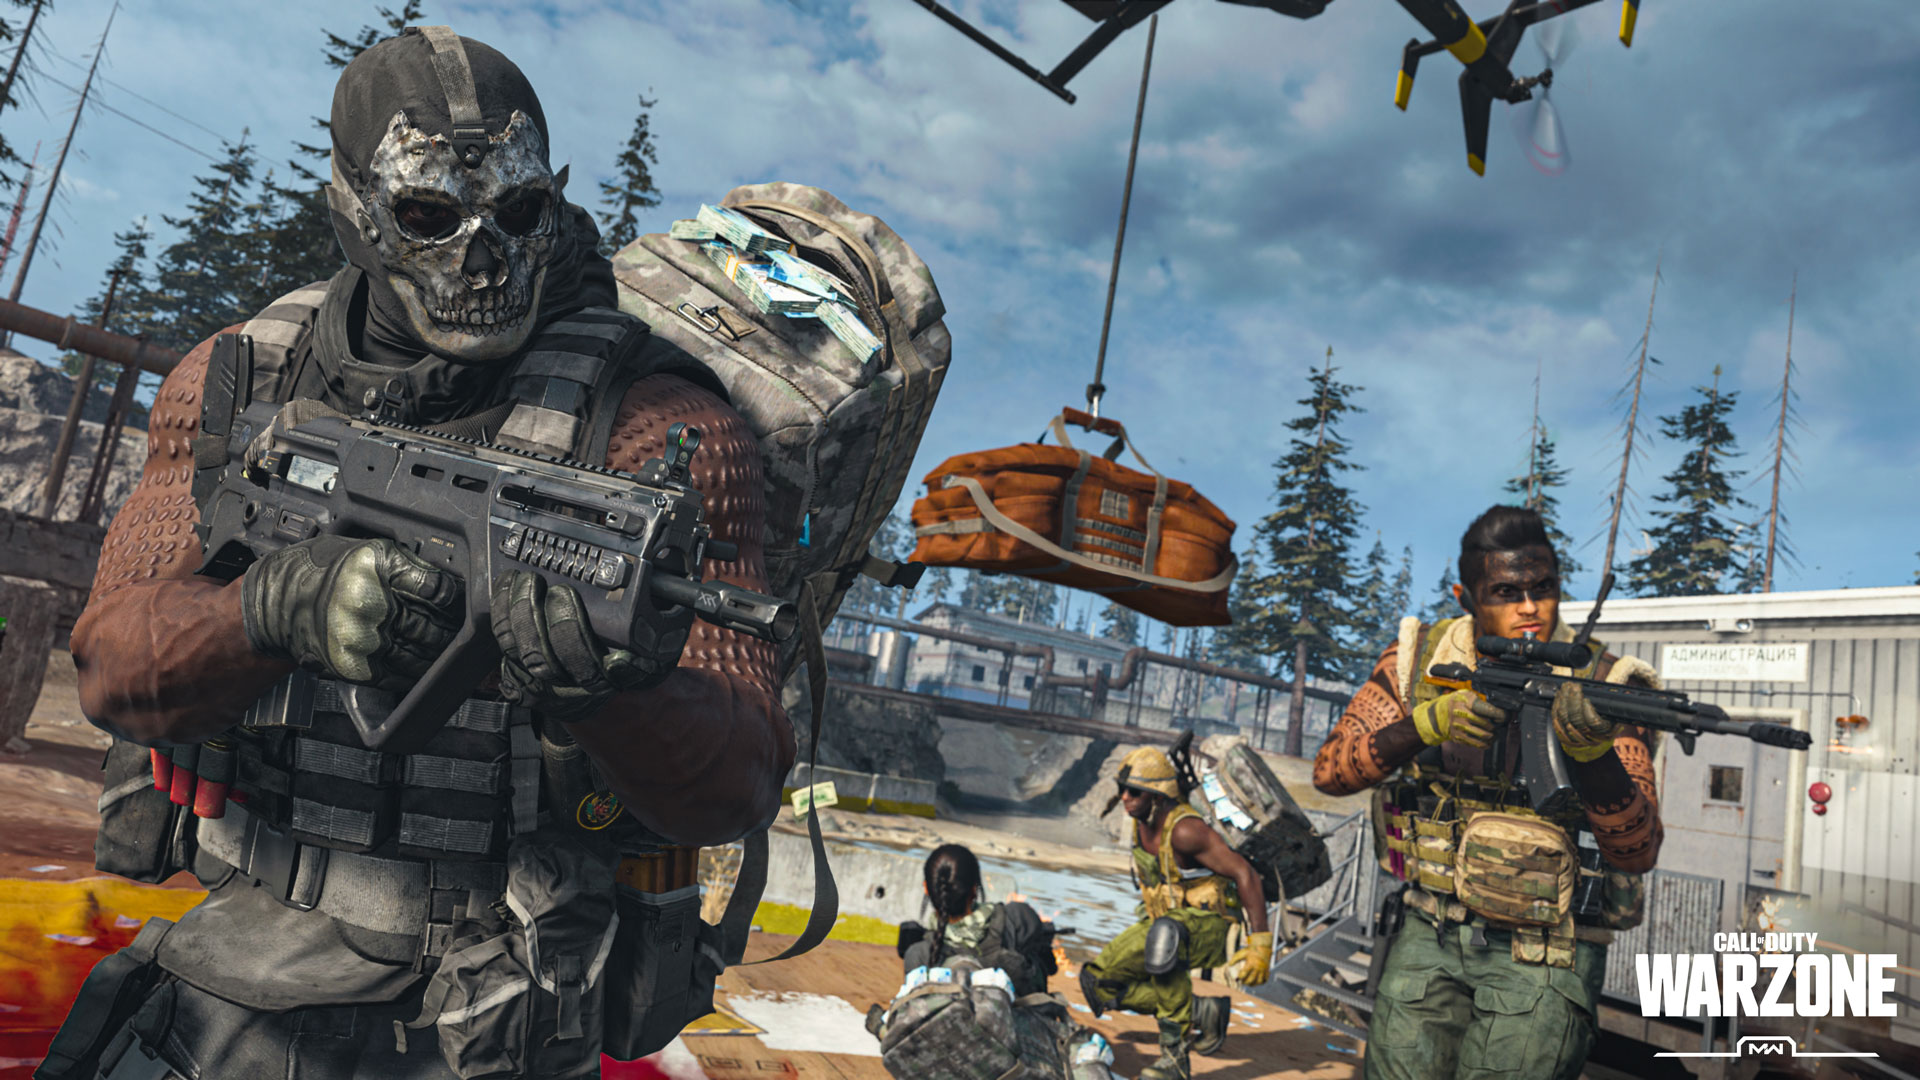 Warzone 1.34 Patch Notes – Warzone Version 1.34 Click To Know All Update